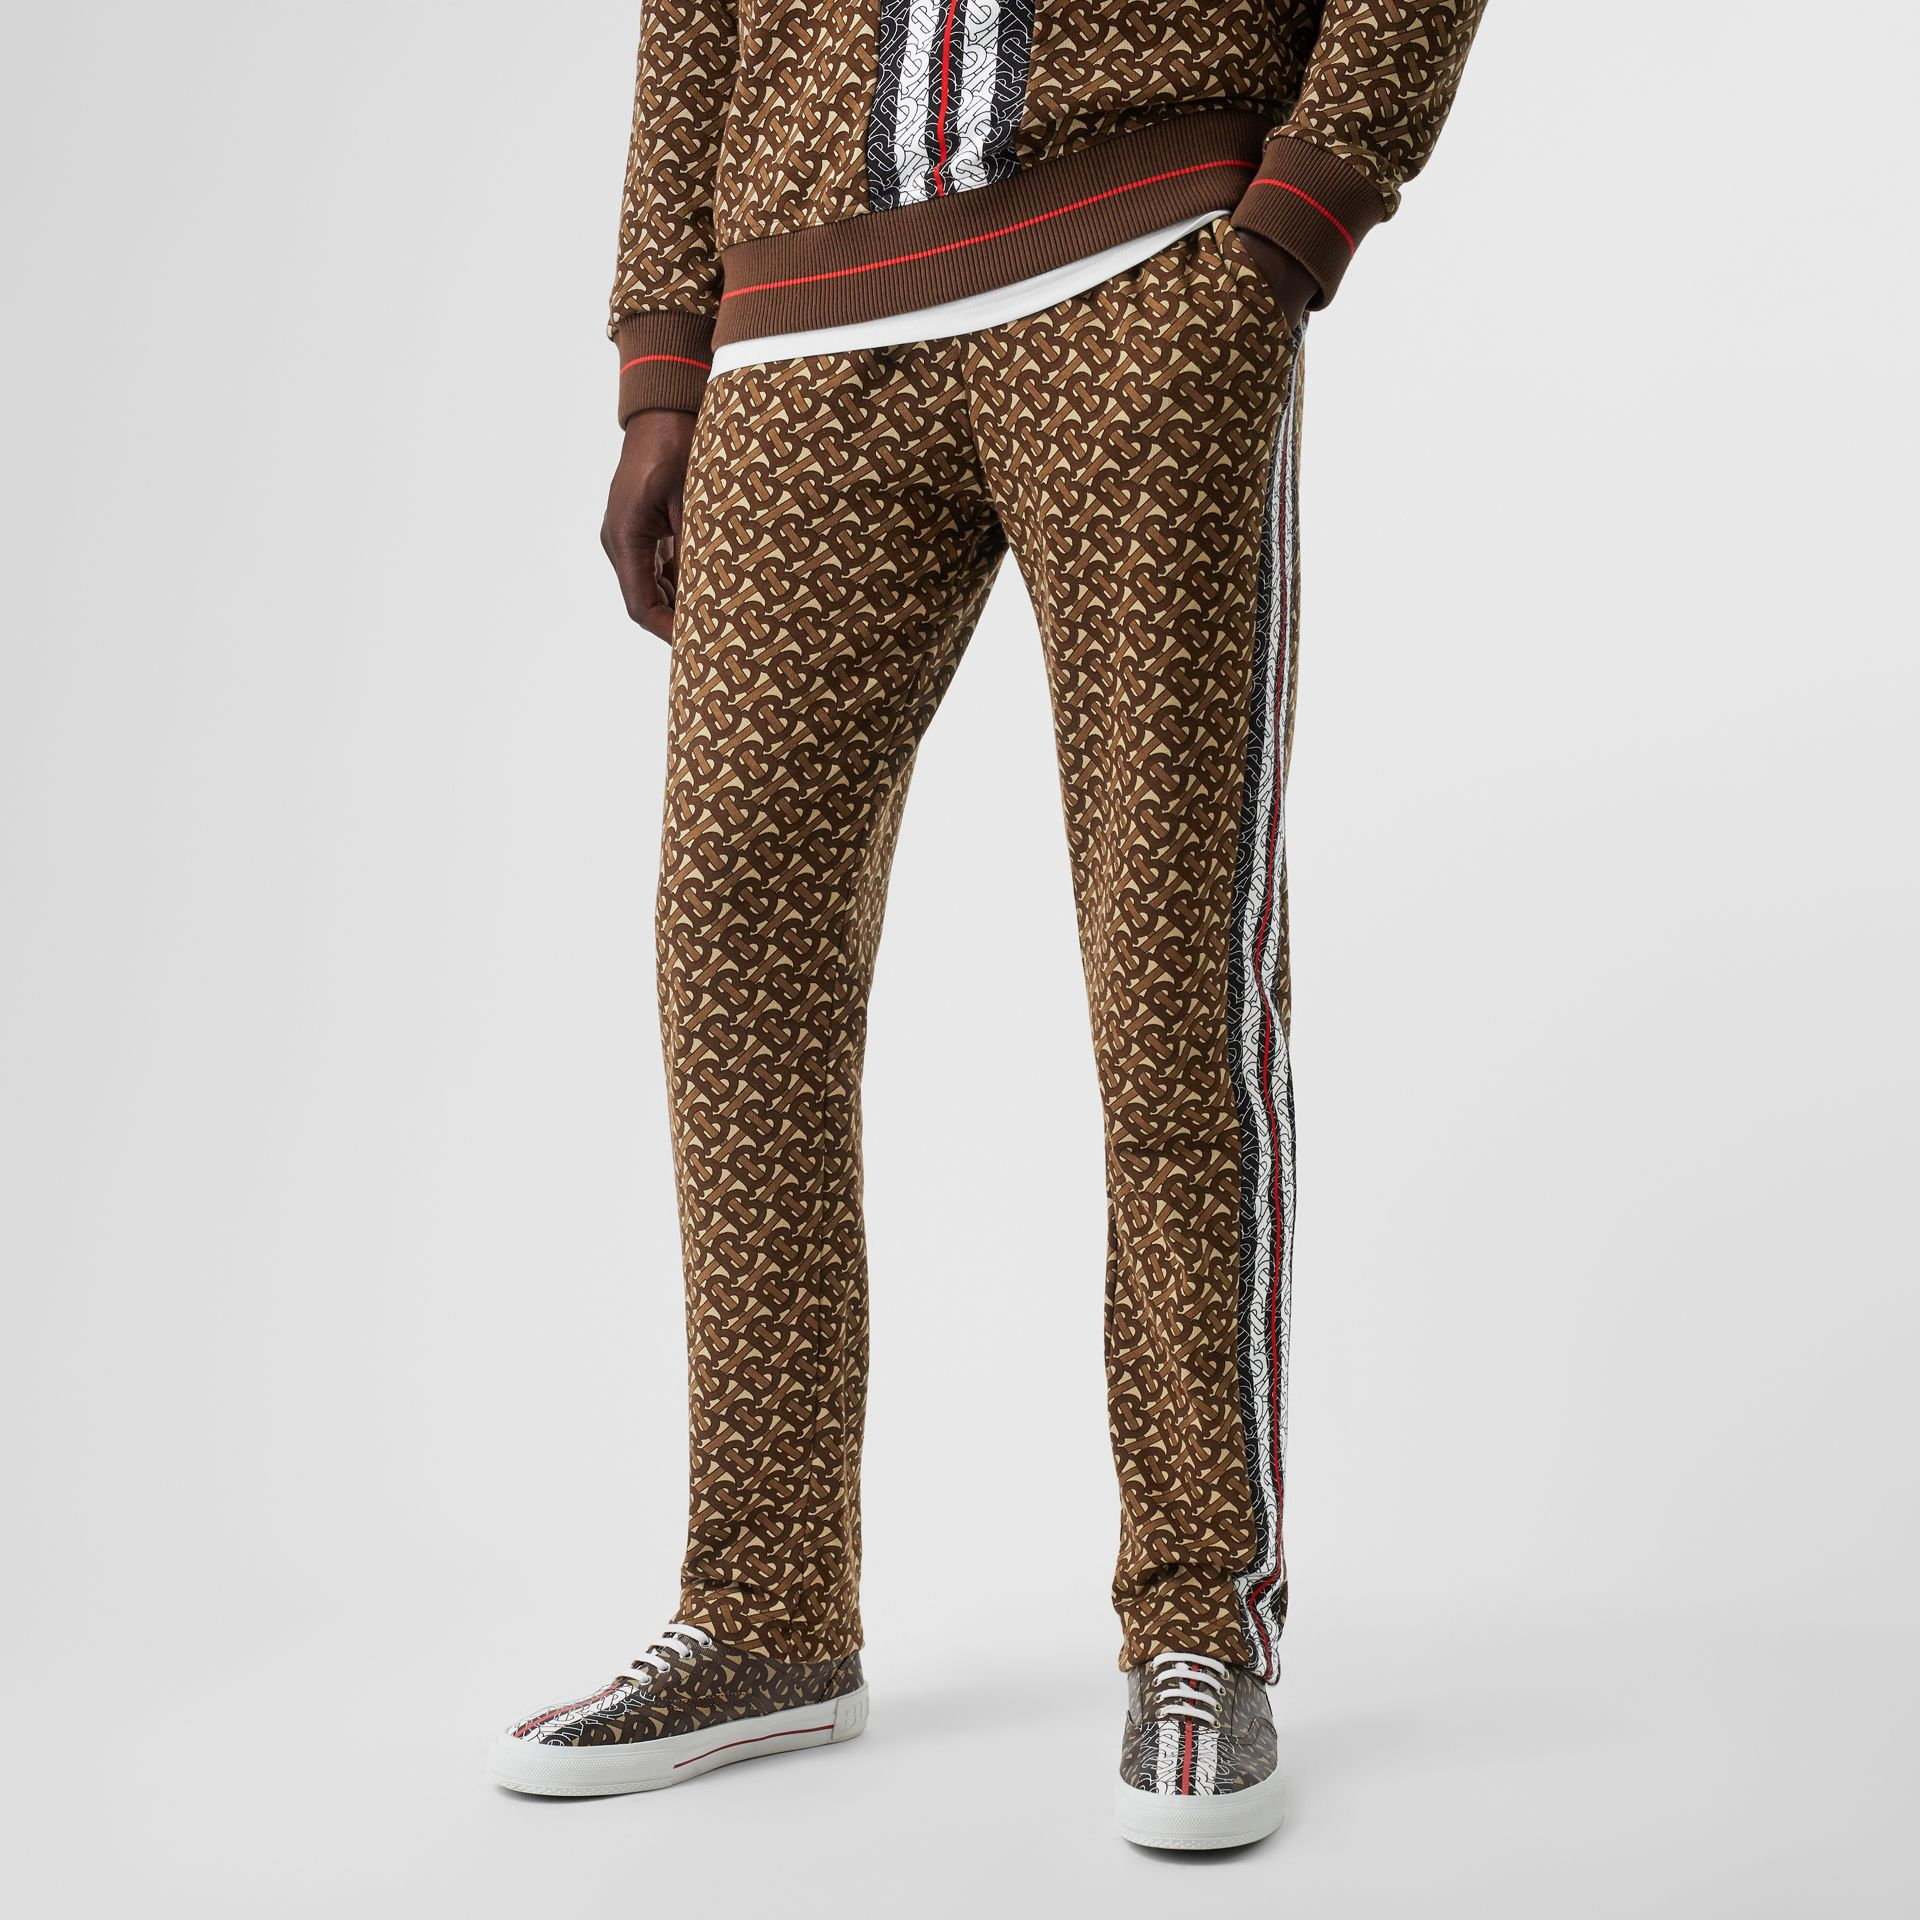 Pantalon de survêtement en coton rayé Monogram (Brun Bride) - Homme | Burberry - photo de la galerie 4